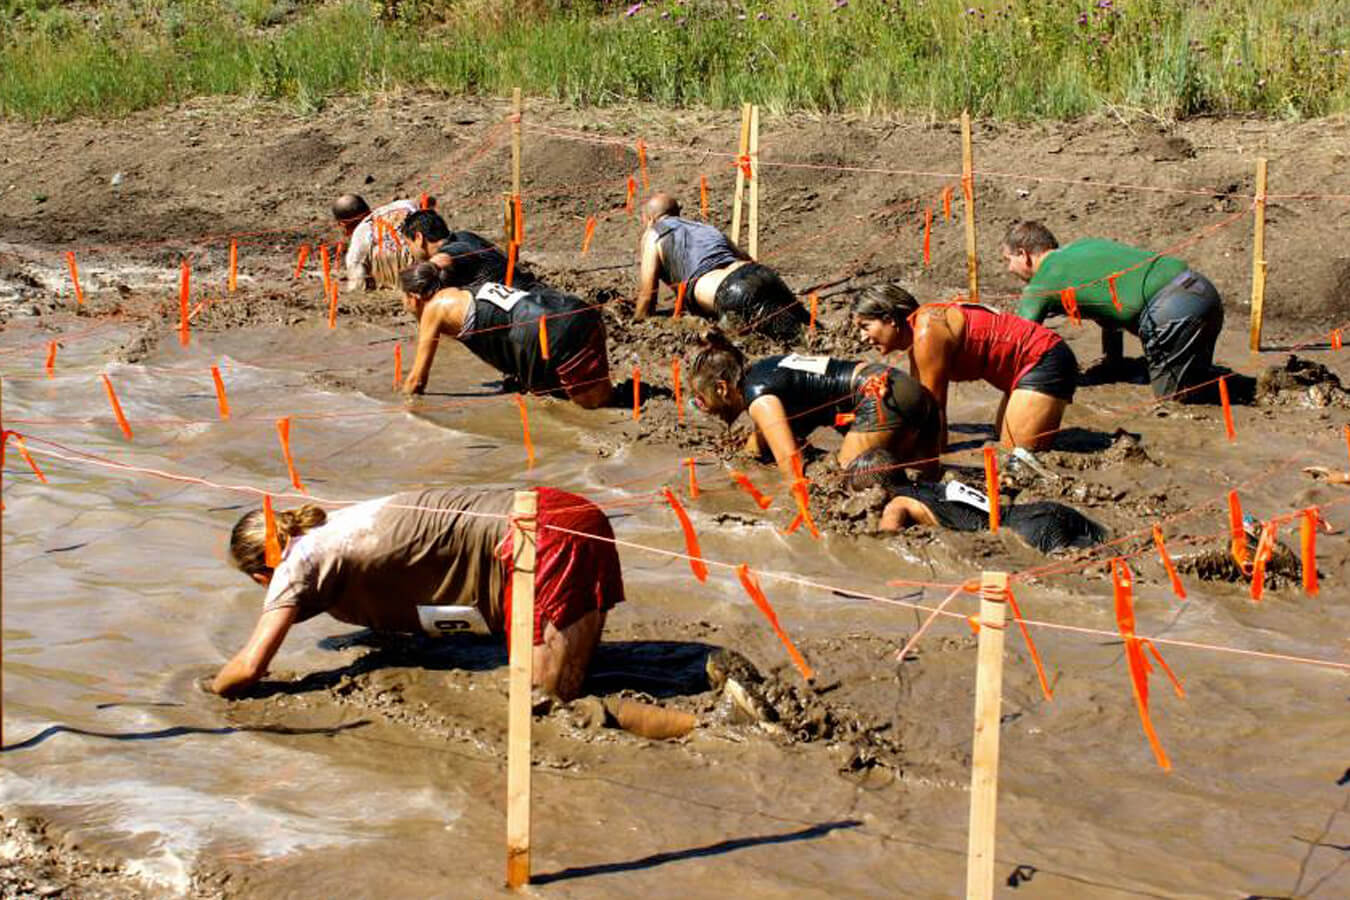 Participants in the Pirate Plunge Mud Run going under the ropes and through the mud